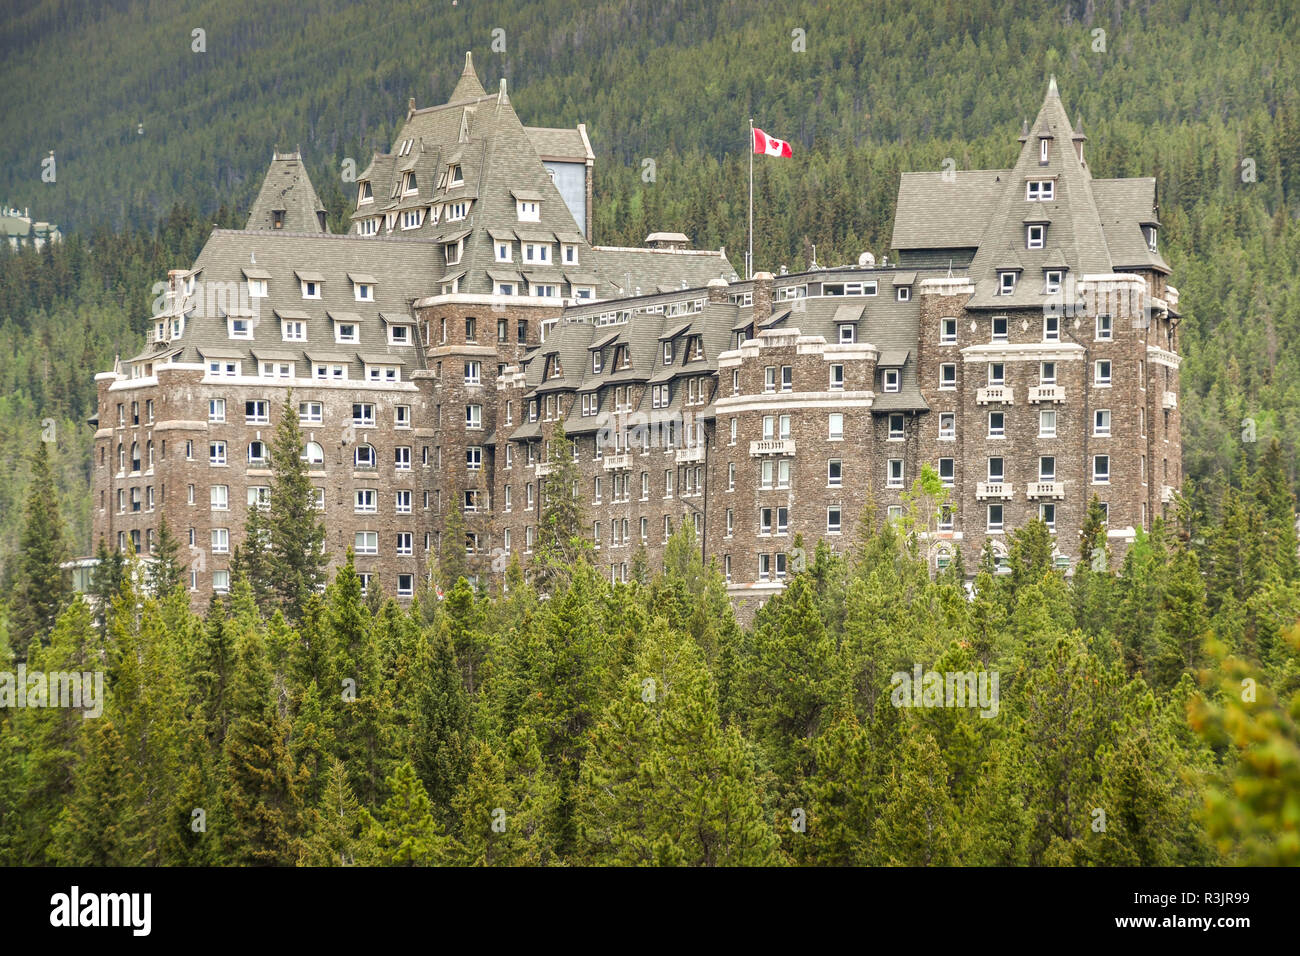 BANFF, AB, CANADA - JUNE 2018: Scenic view of the Banff Springs Fairmont Hotel surrounded by evergreen trees. - Stock Image